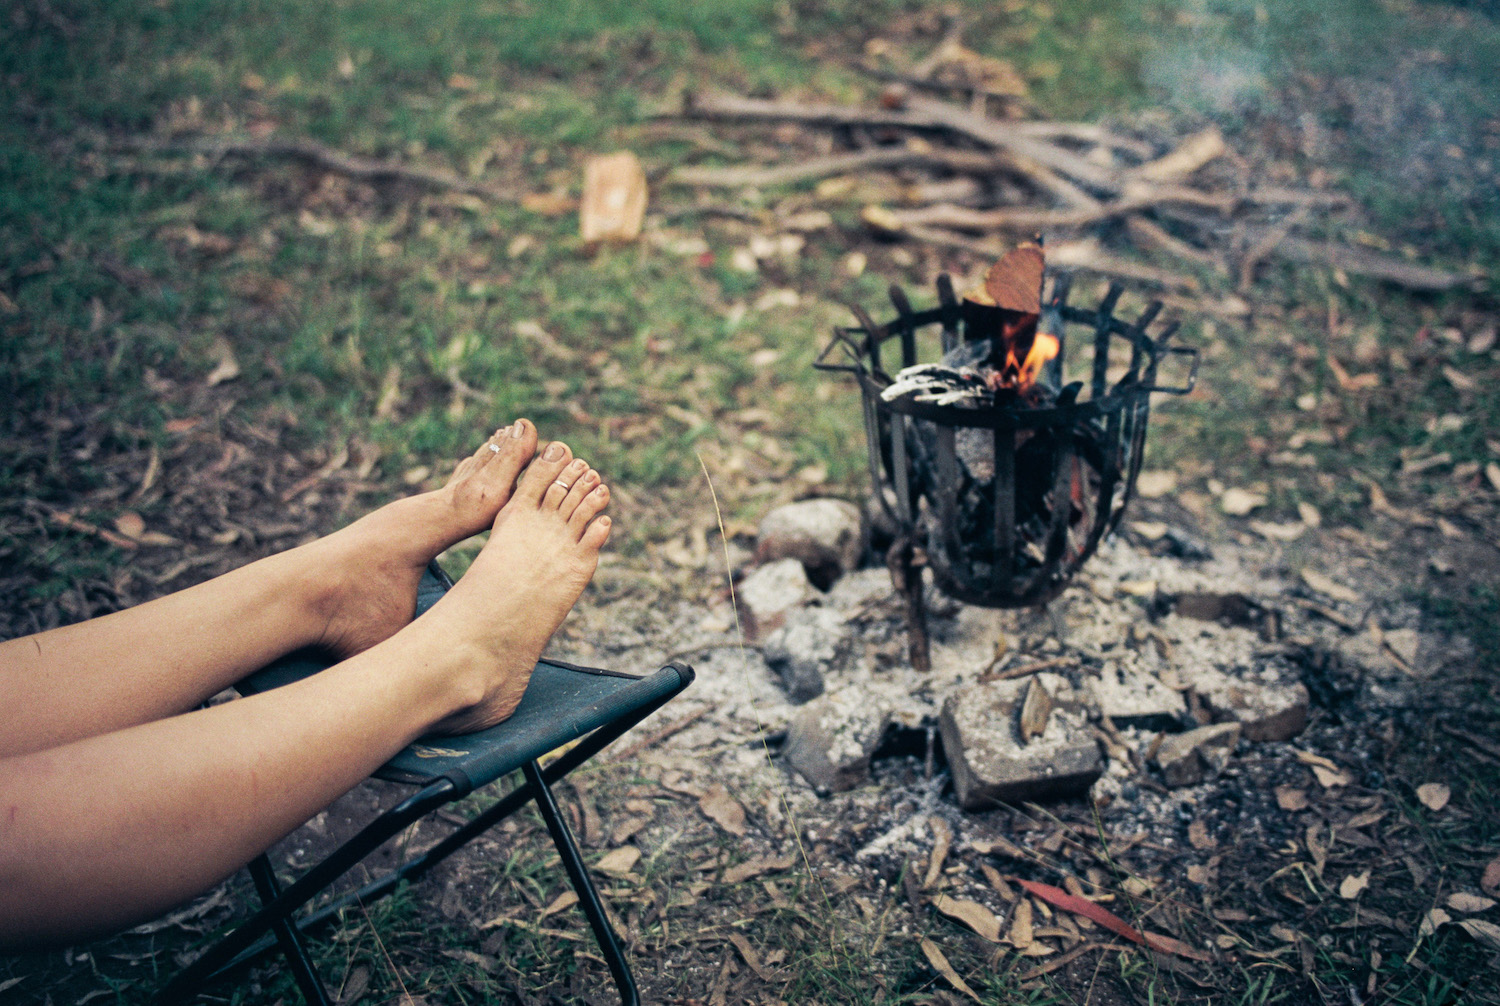 Things to do while camping. Stare at fire, read, eat, swim.